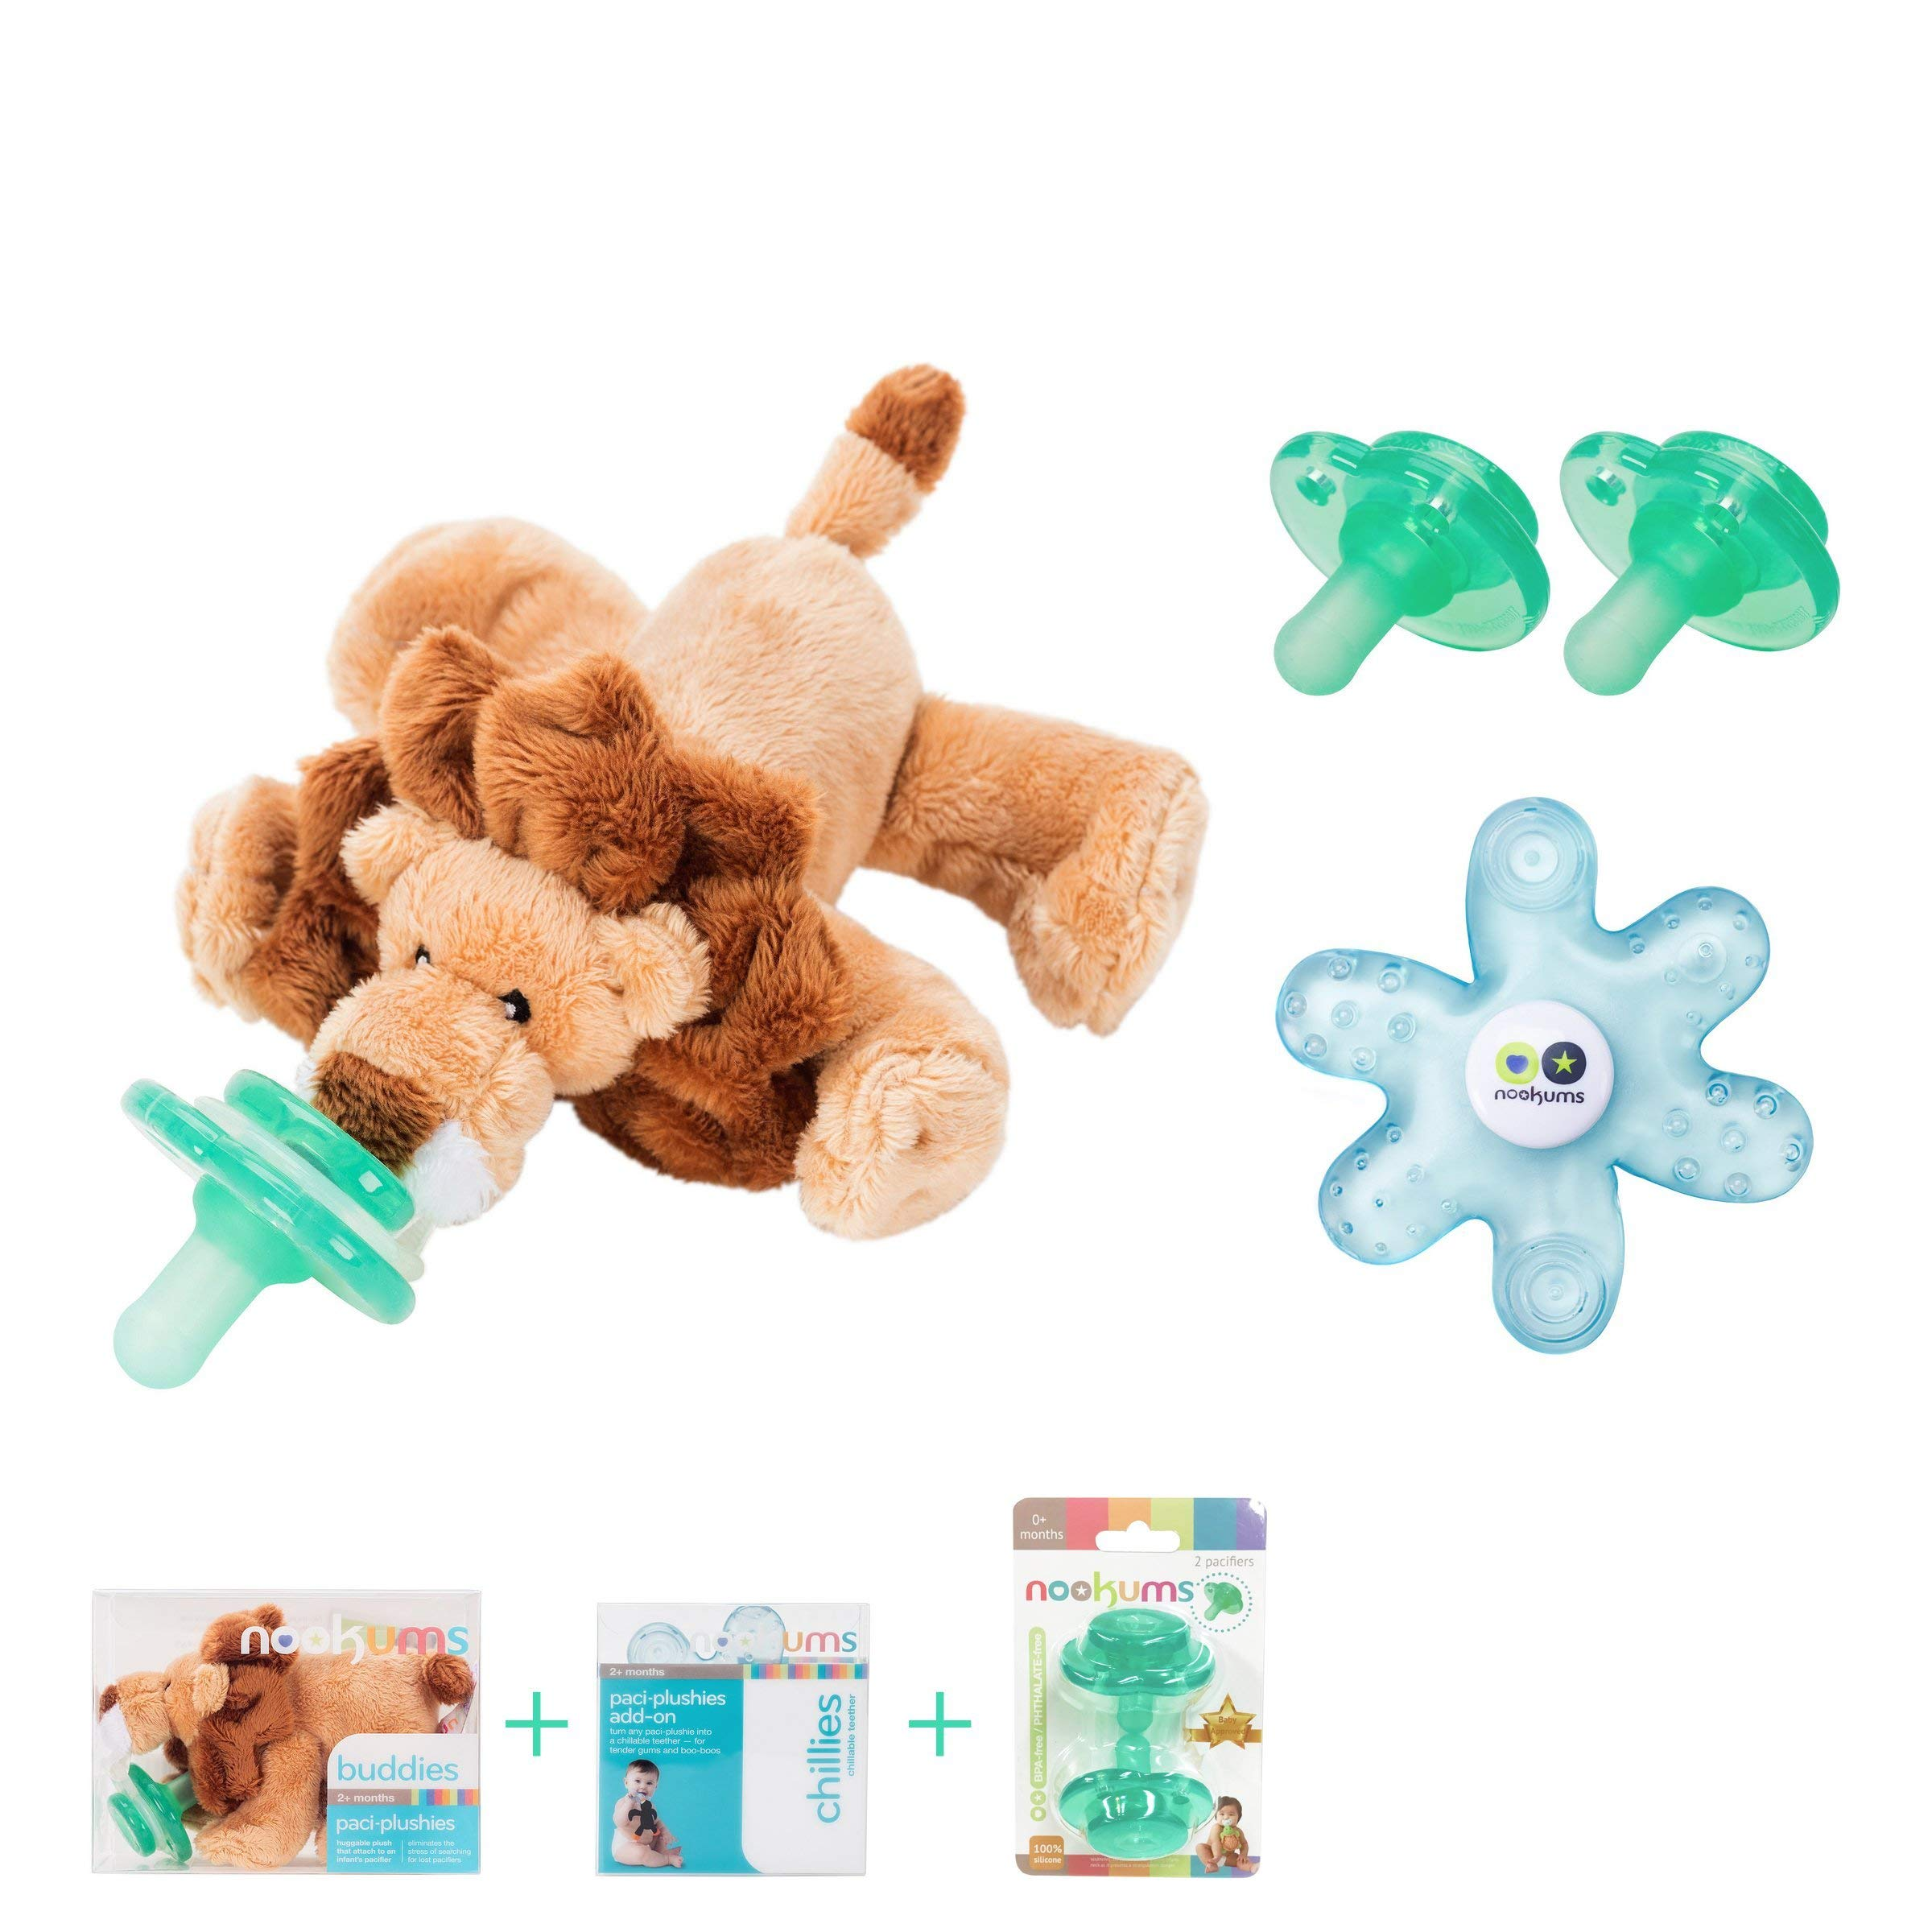 Nookums Paci-Plushies Lion Baby Gift Set - Pacifier Holder, Teether and Replacement Pacifier 2 Pack (Plush Toy Includes Detachable Pacifier, Use with Multiple Brand Name Pacifiers)